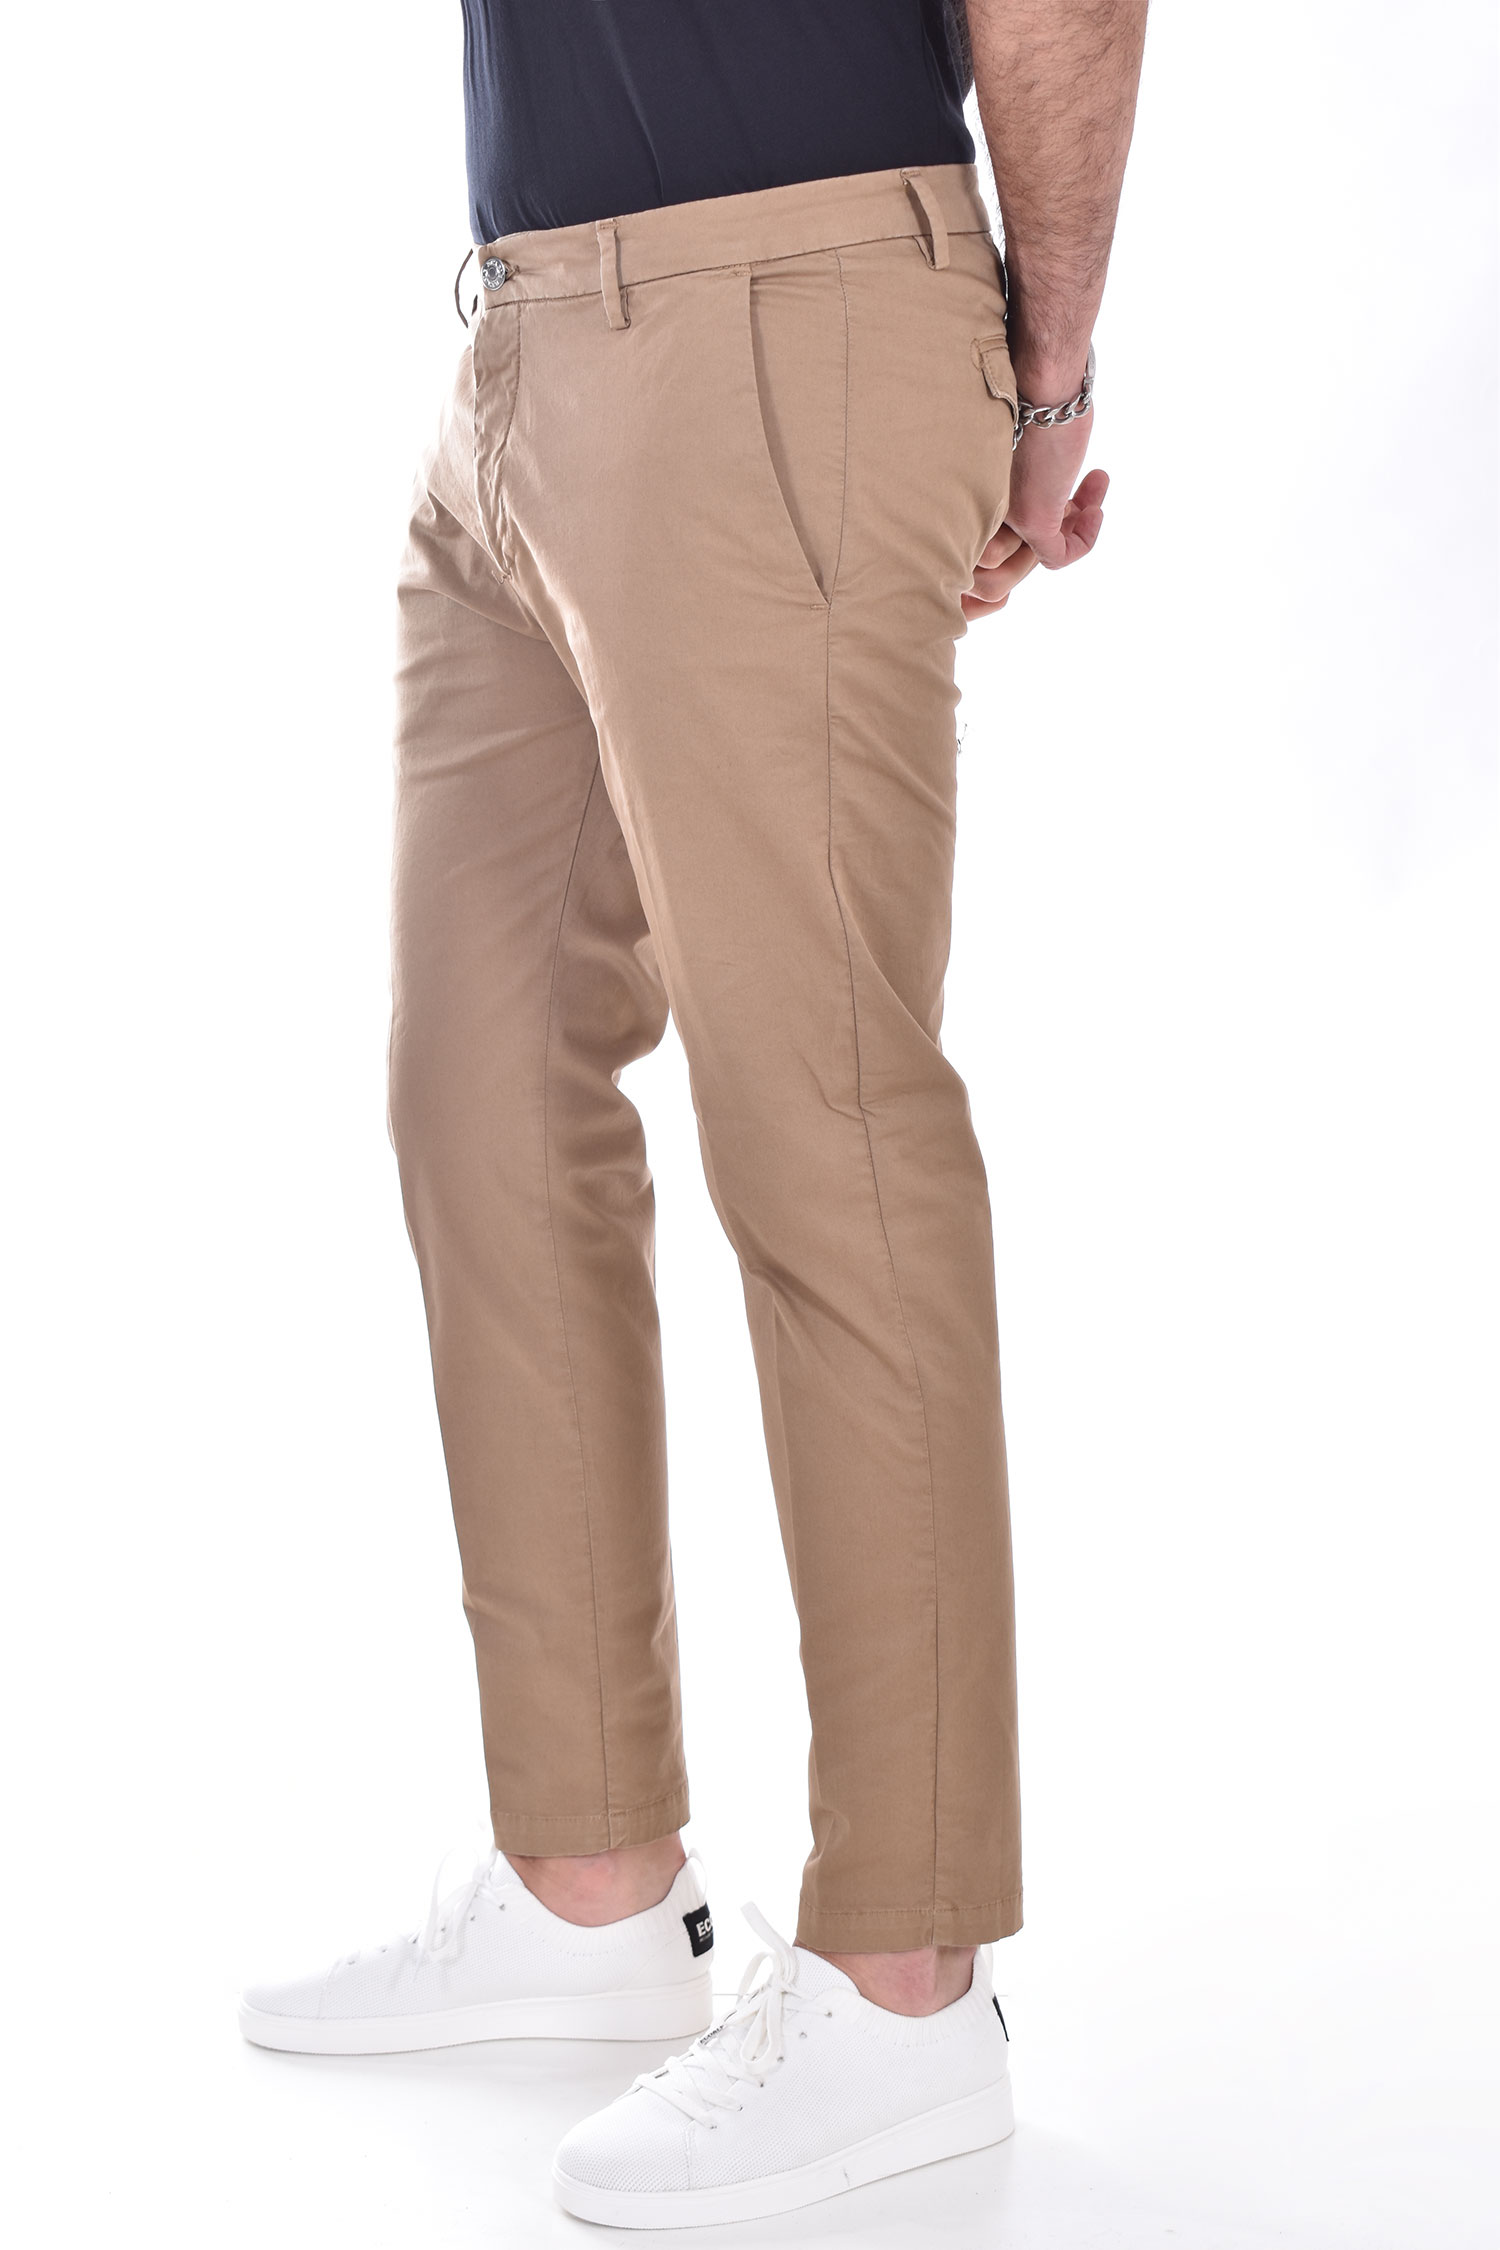 Pantalone Be Able mike shorter tabacco BE ABLE | MIKE15